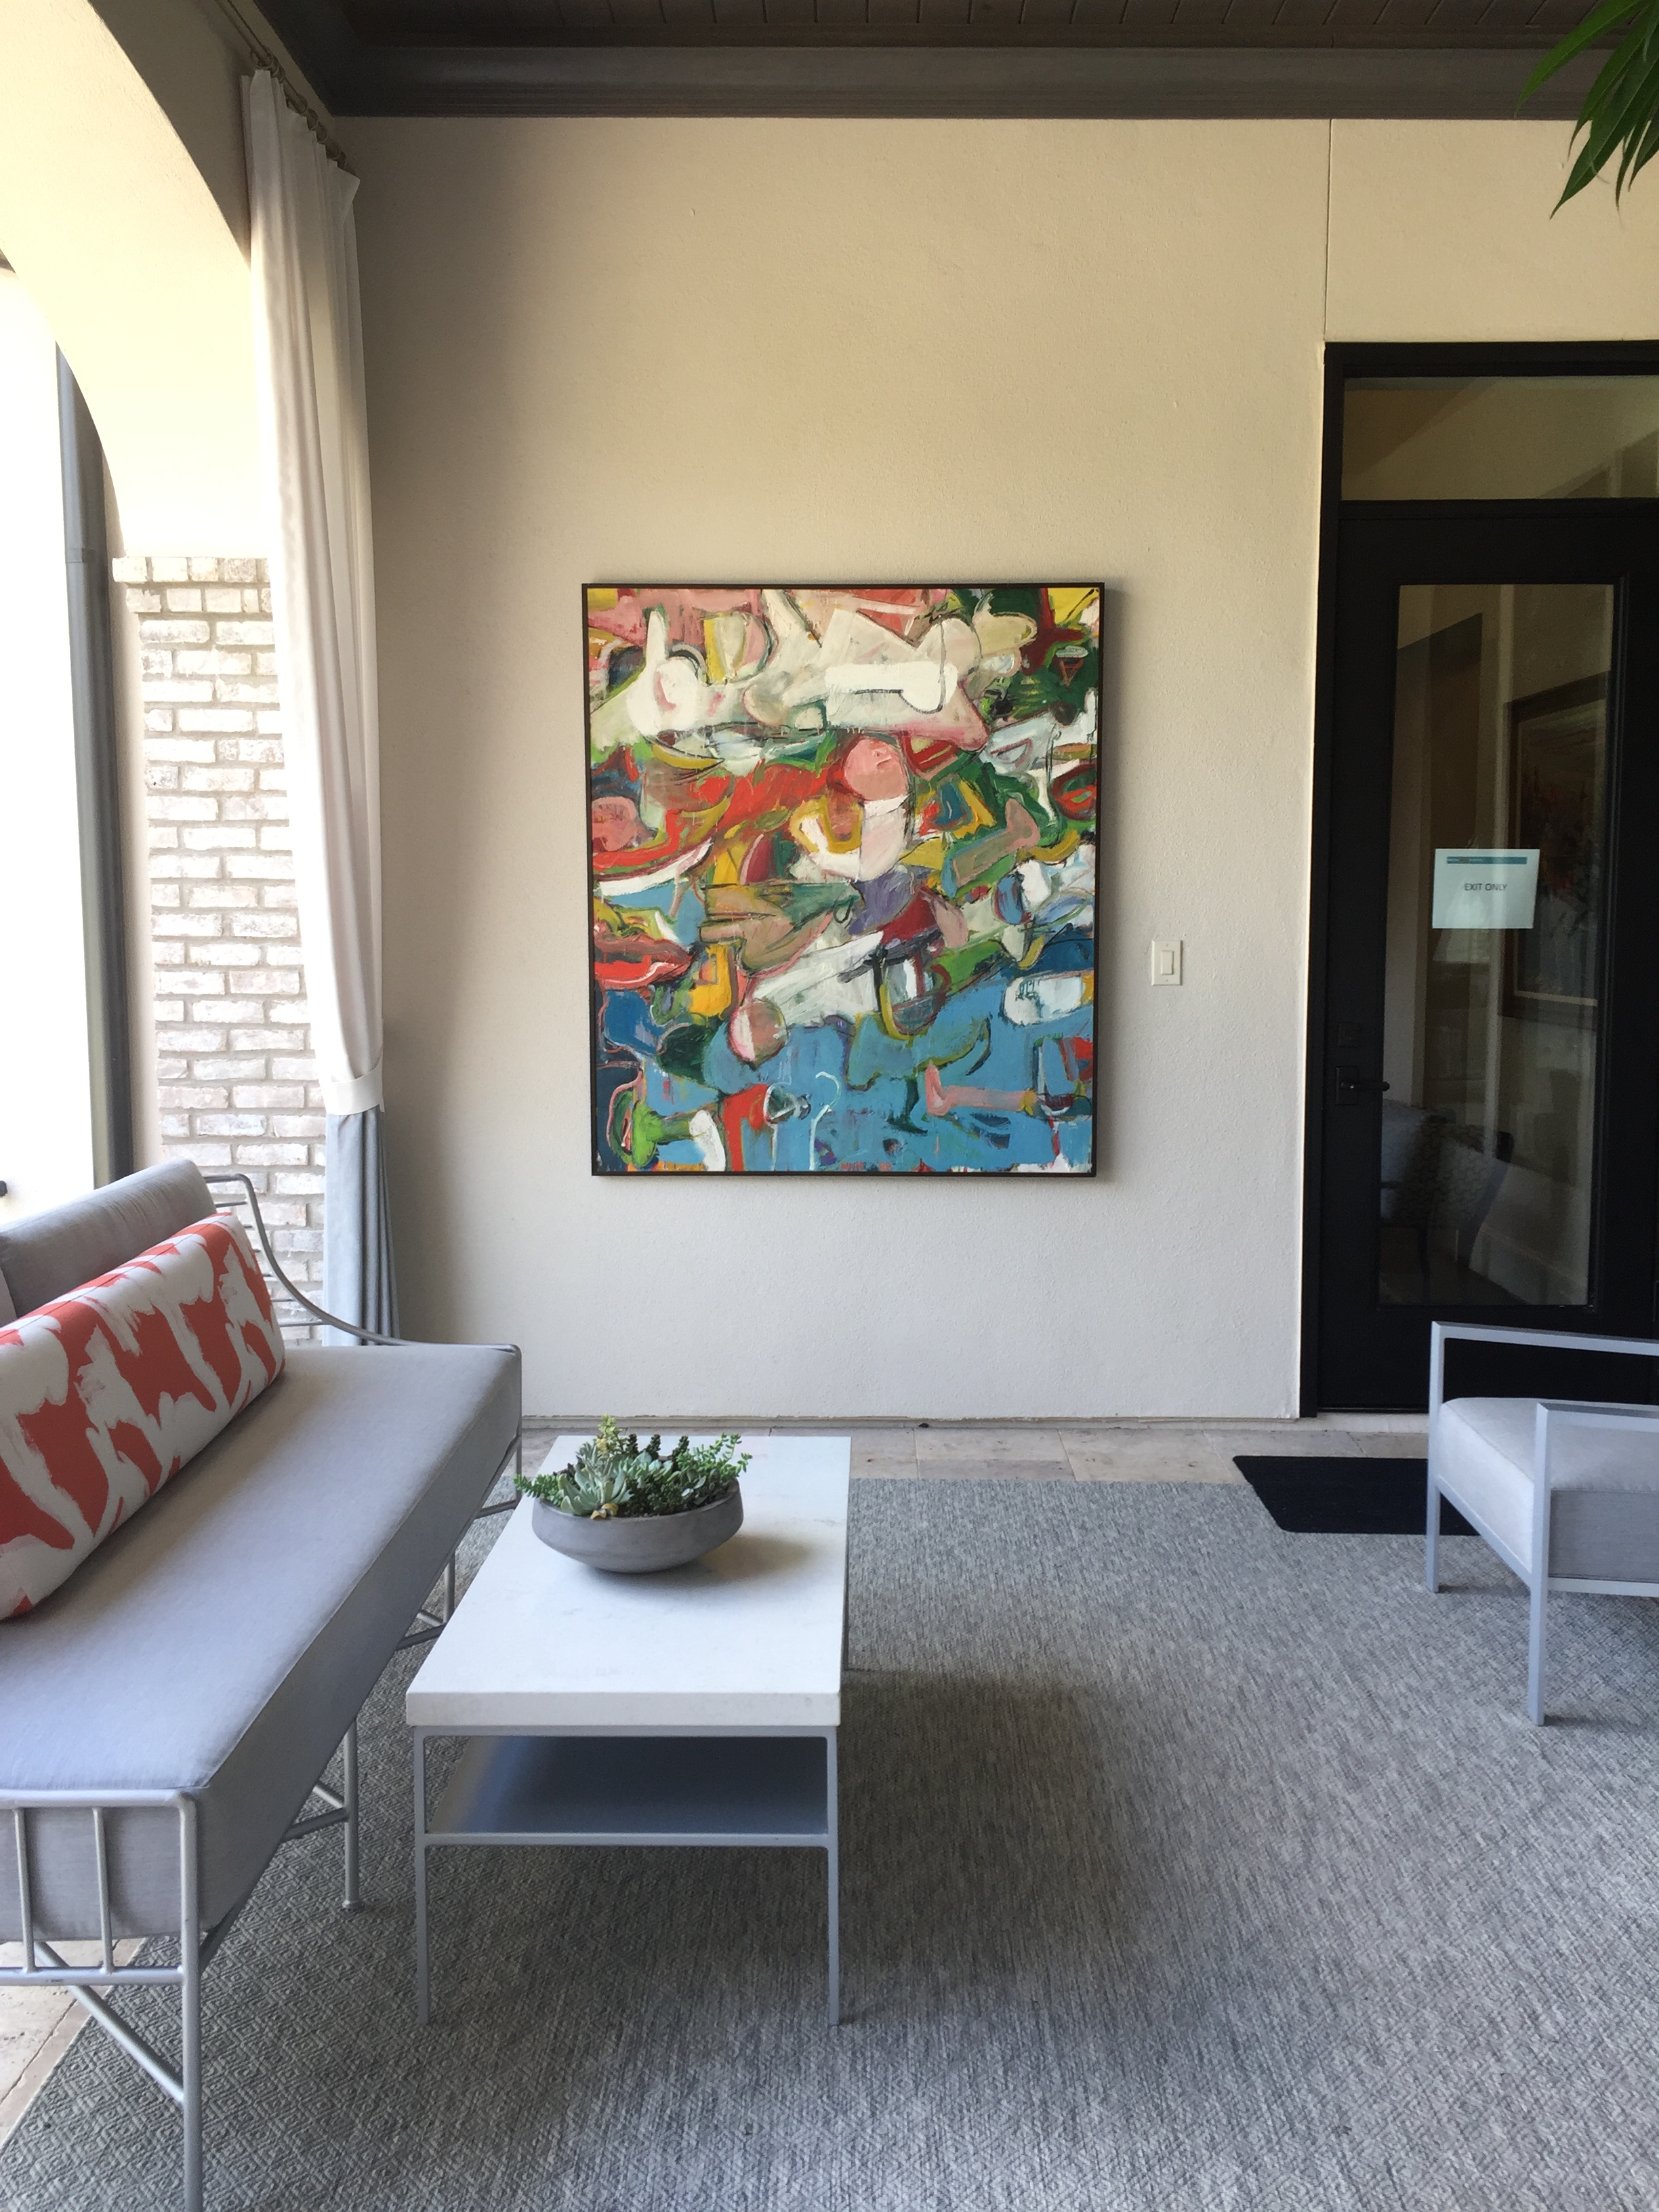 Master suite outdoor patio with art designed by Amilee Wendt